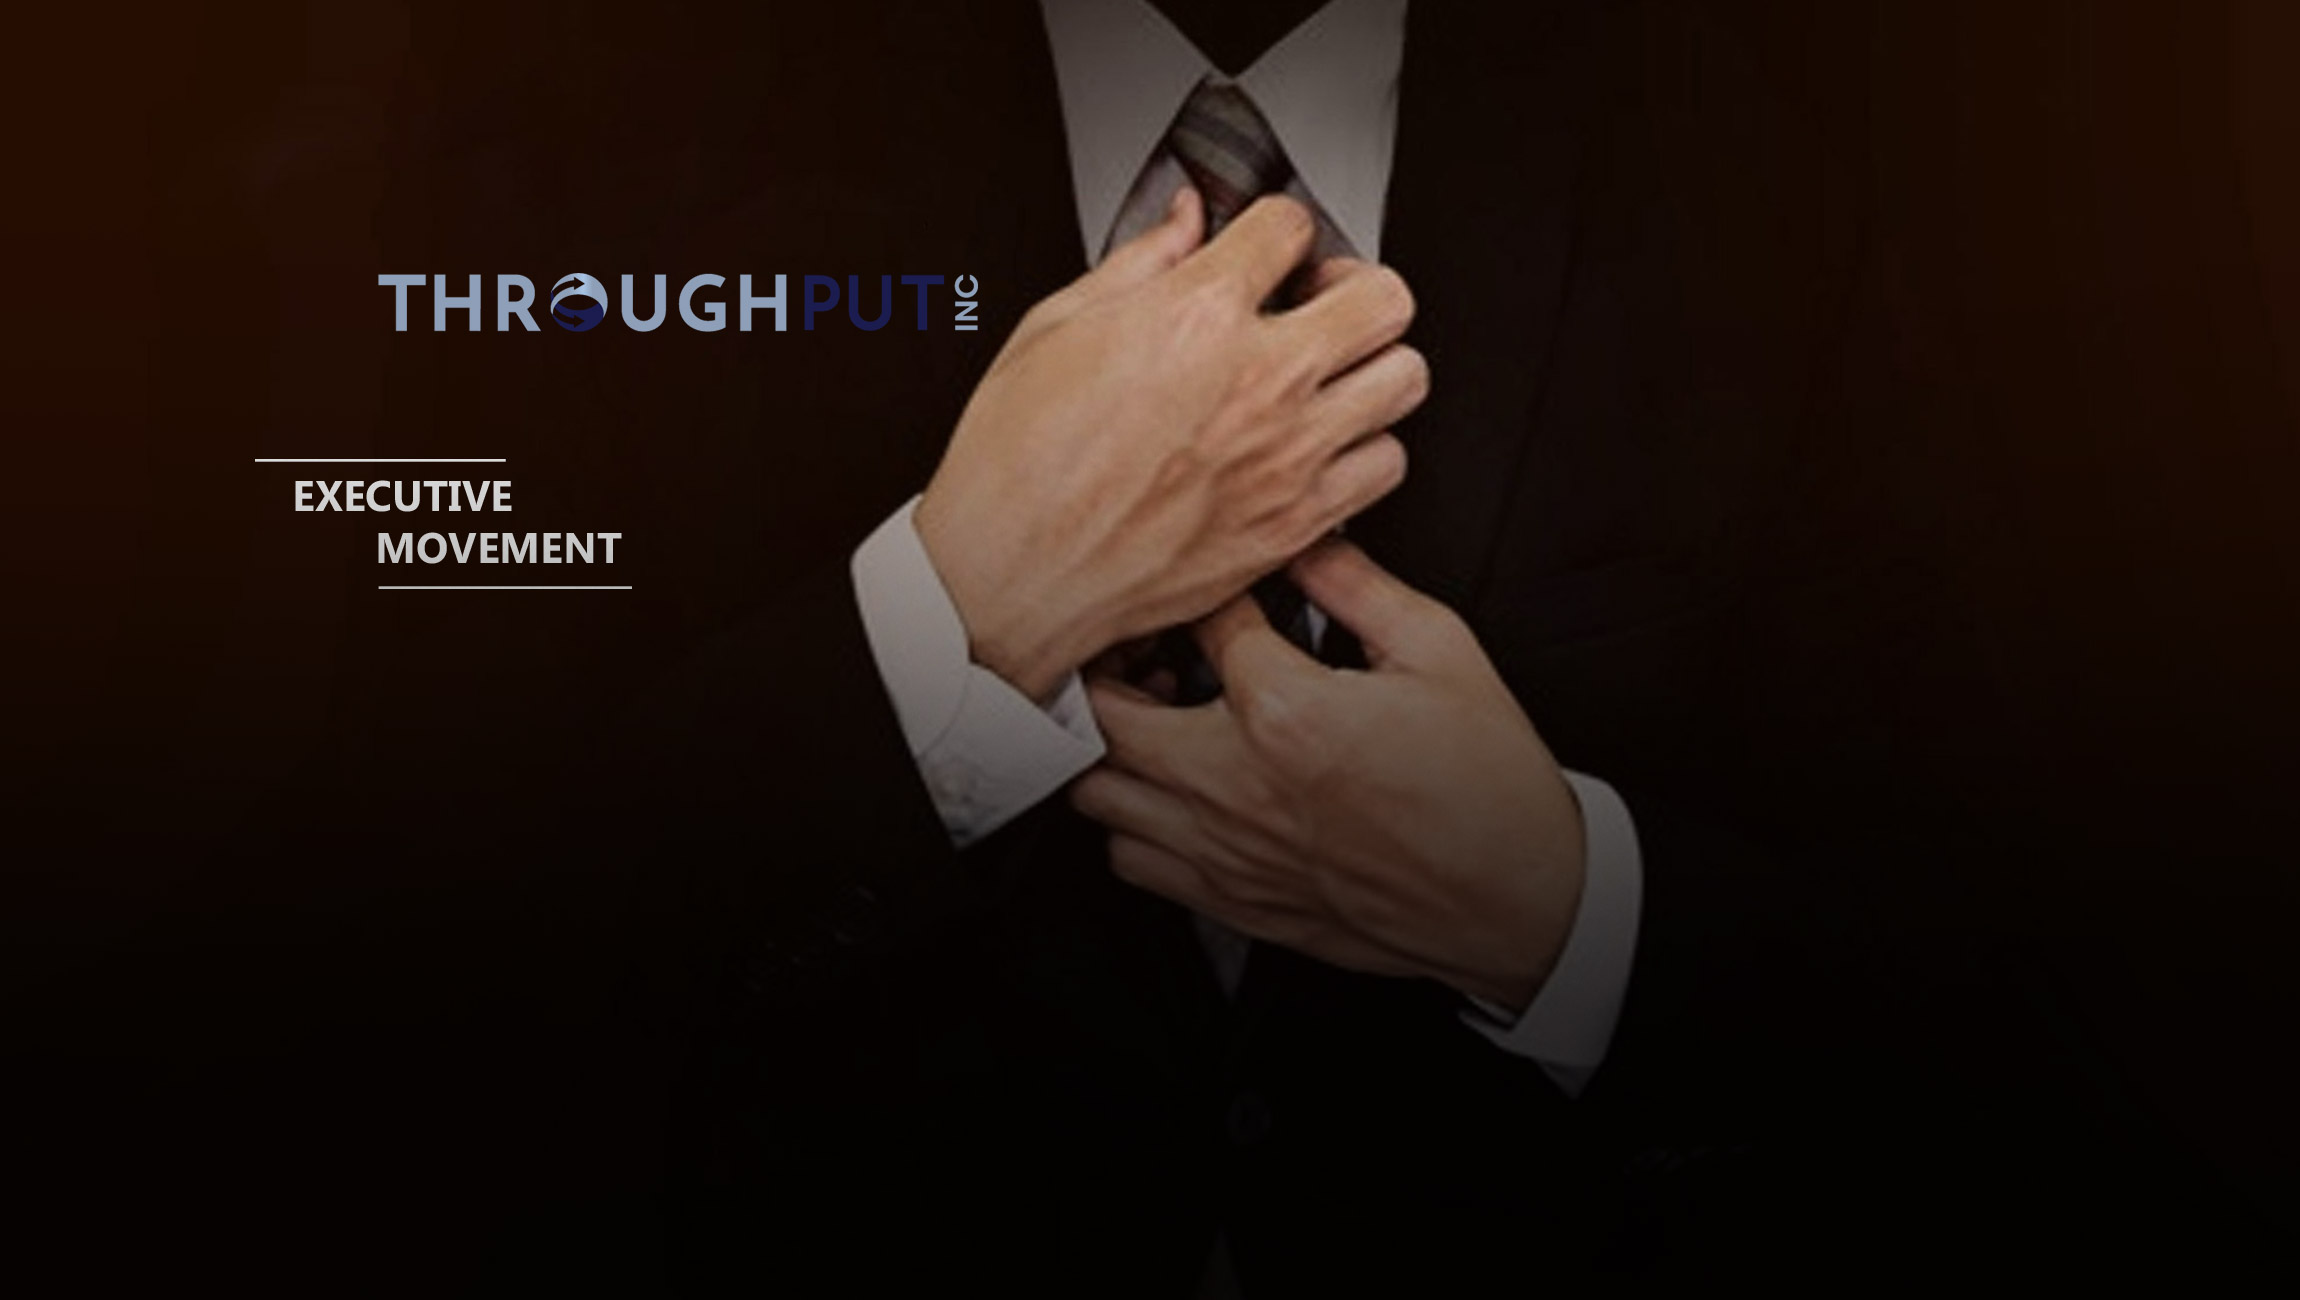 ThroughPut Inc. Appoints the former Vice-Chairman of Bank of America and Distinguished Business Finance Expert, Luke Helms, to its Advisory Board